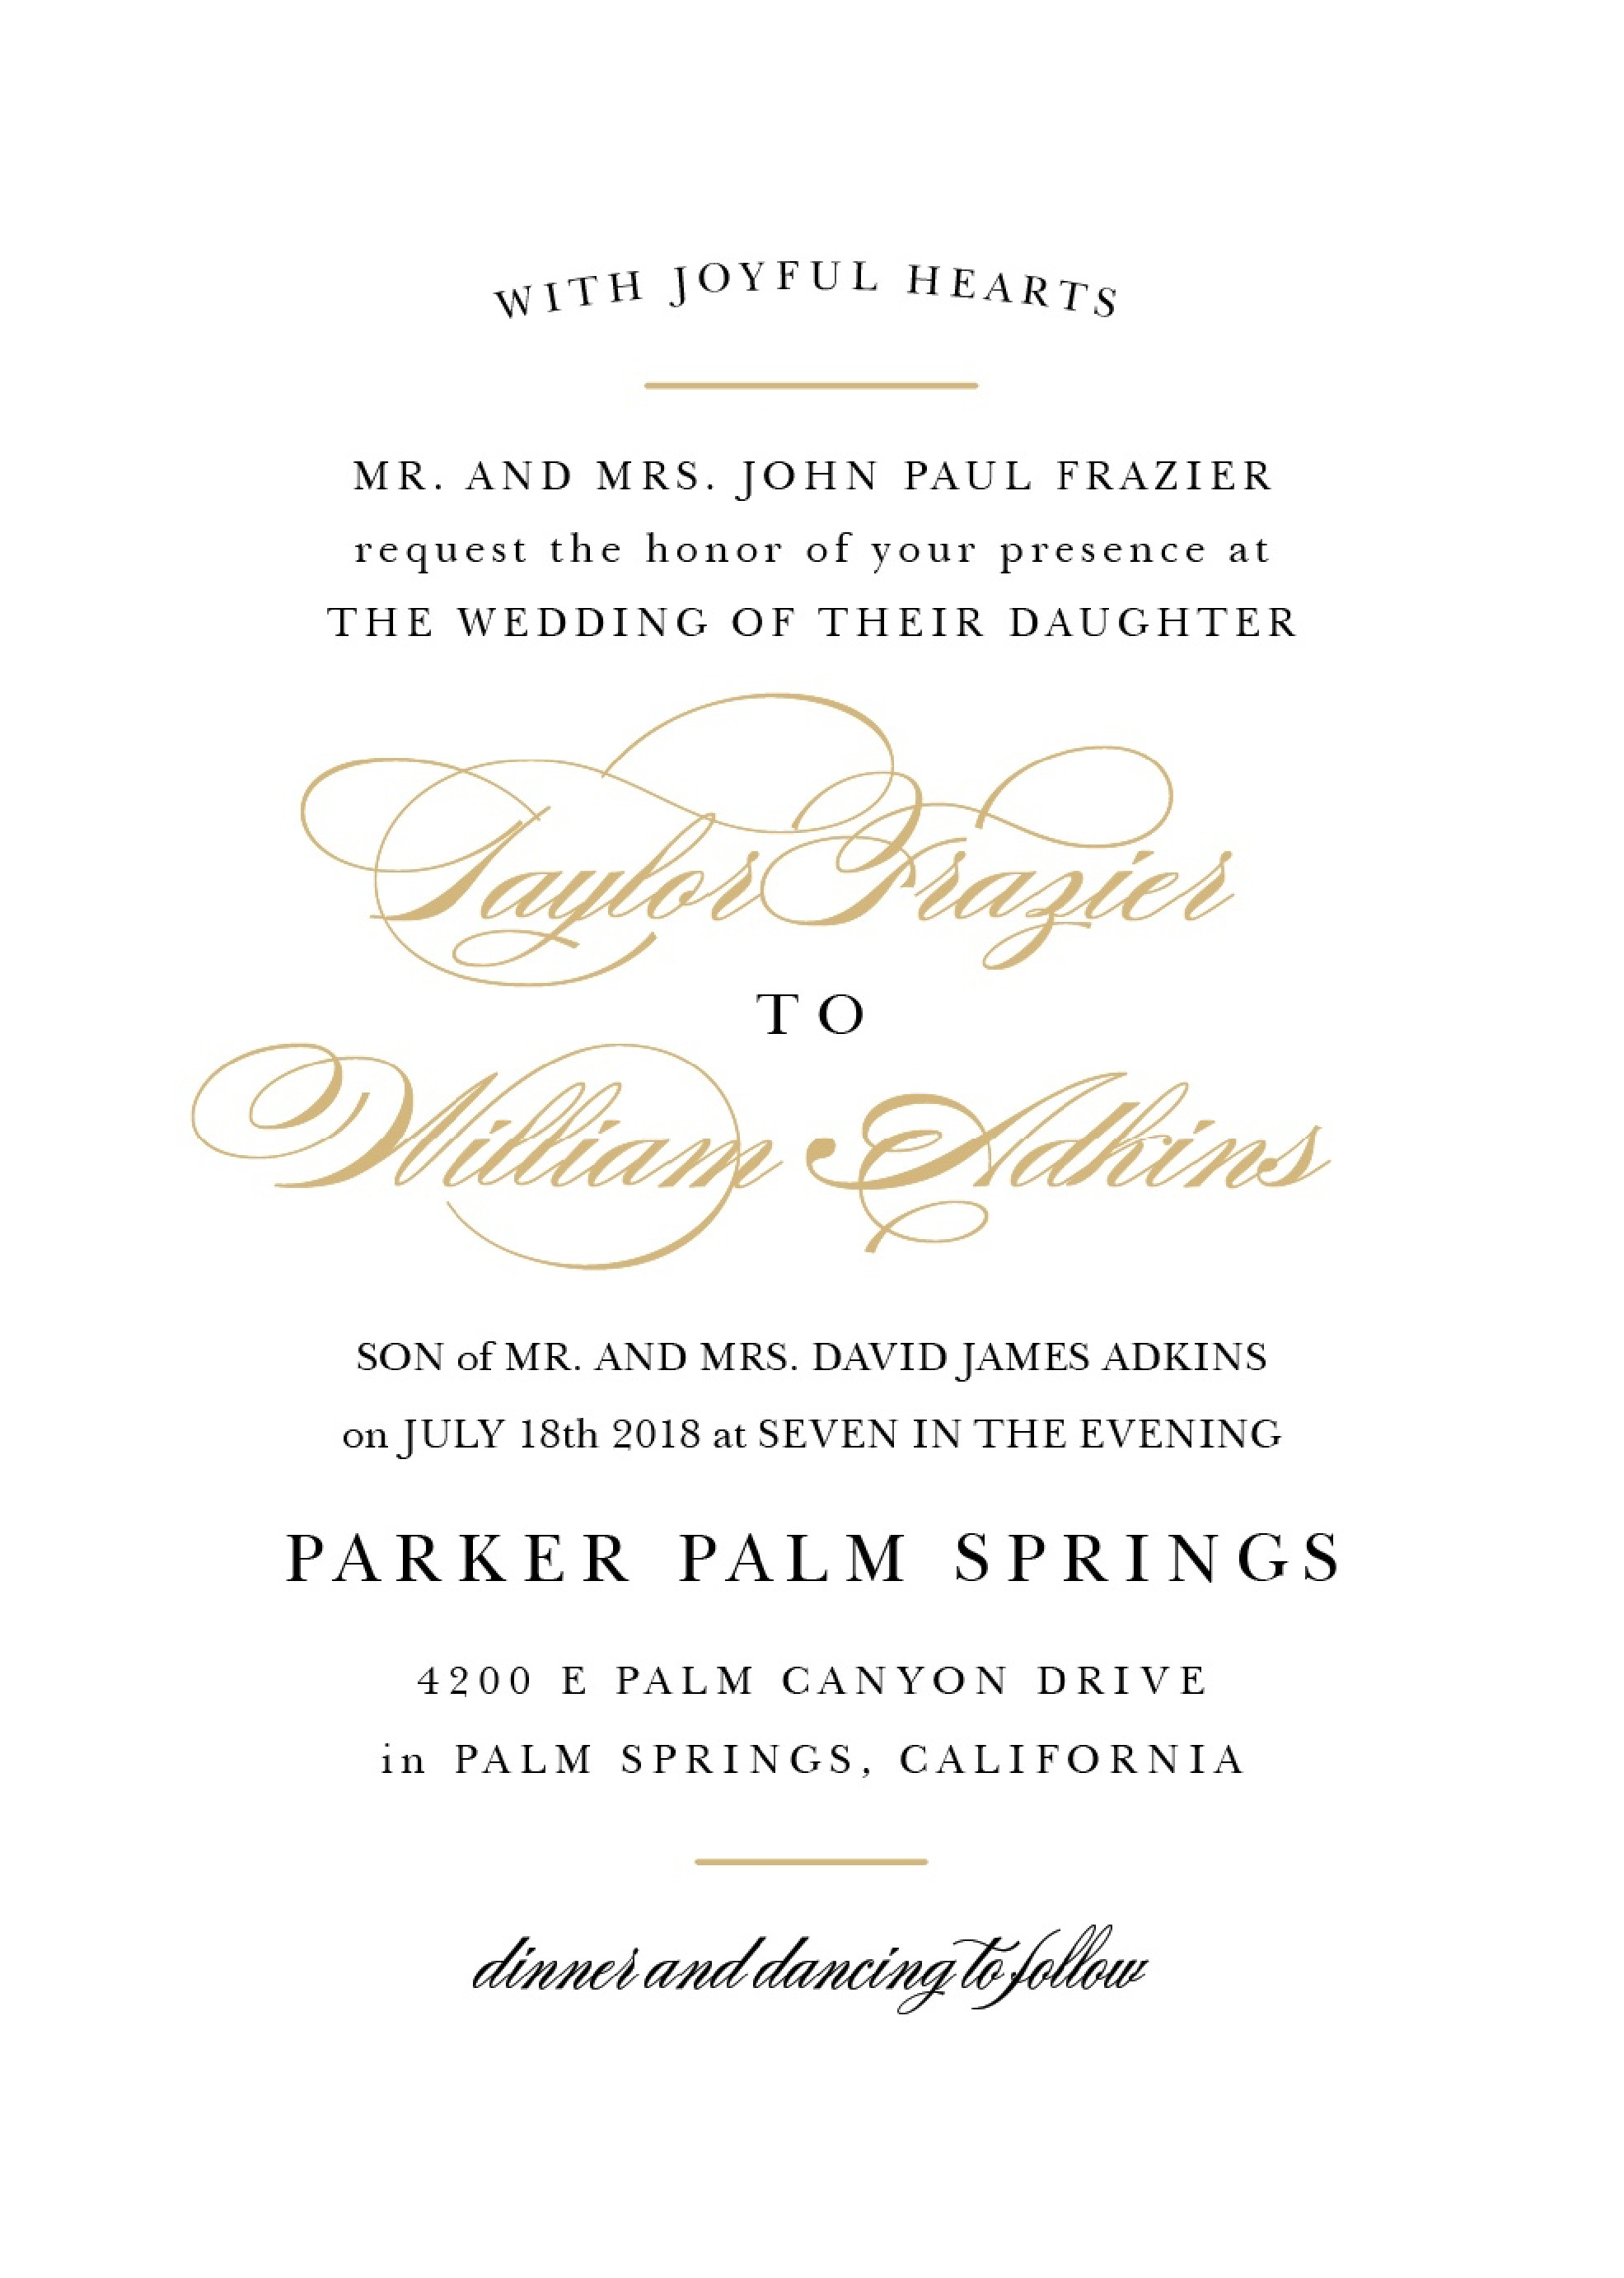 Sample Wedding Invitations Templates Wedding Invitation Wording Samples